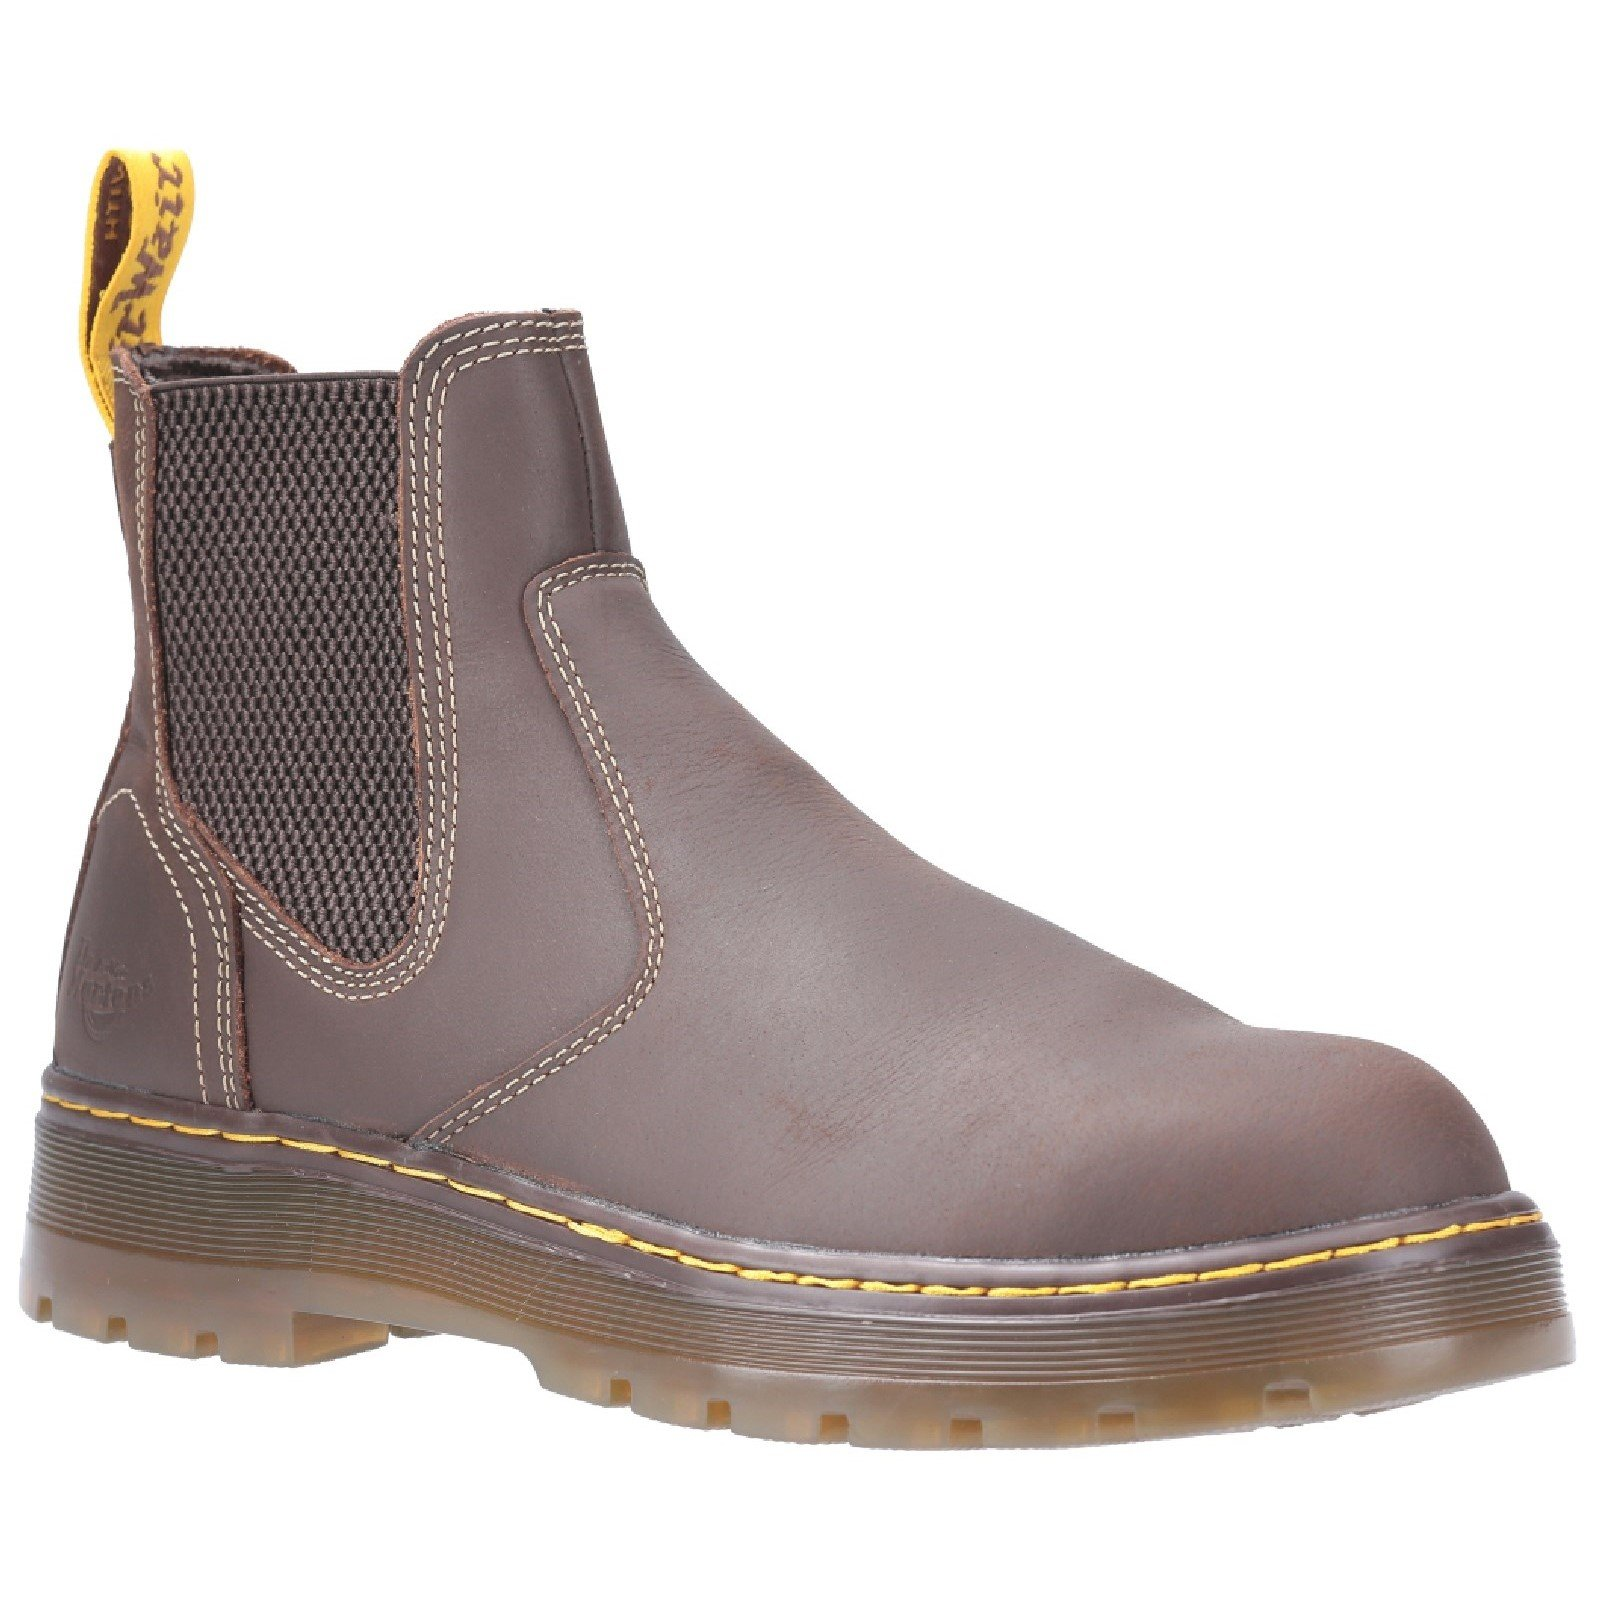 Dr Martens Unisex Eaves SB Elasticated Safety Boot Brown 29519 - Brown 8